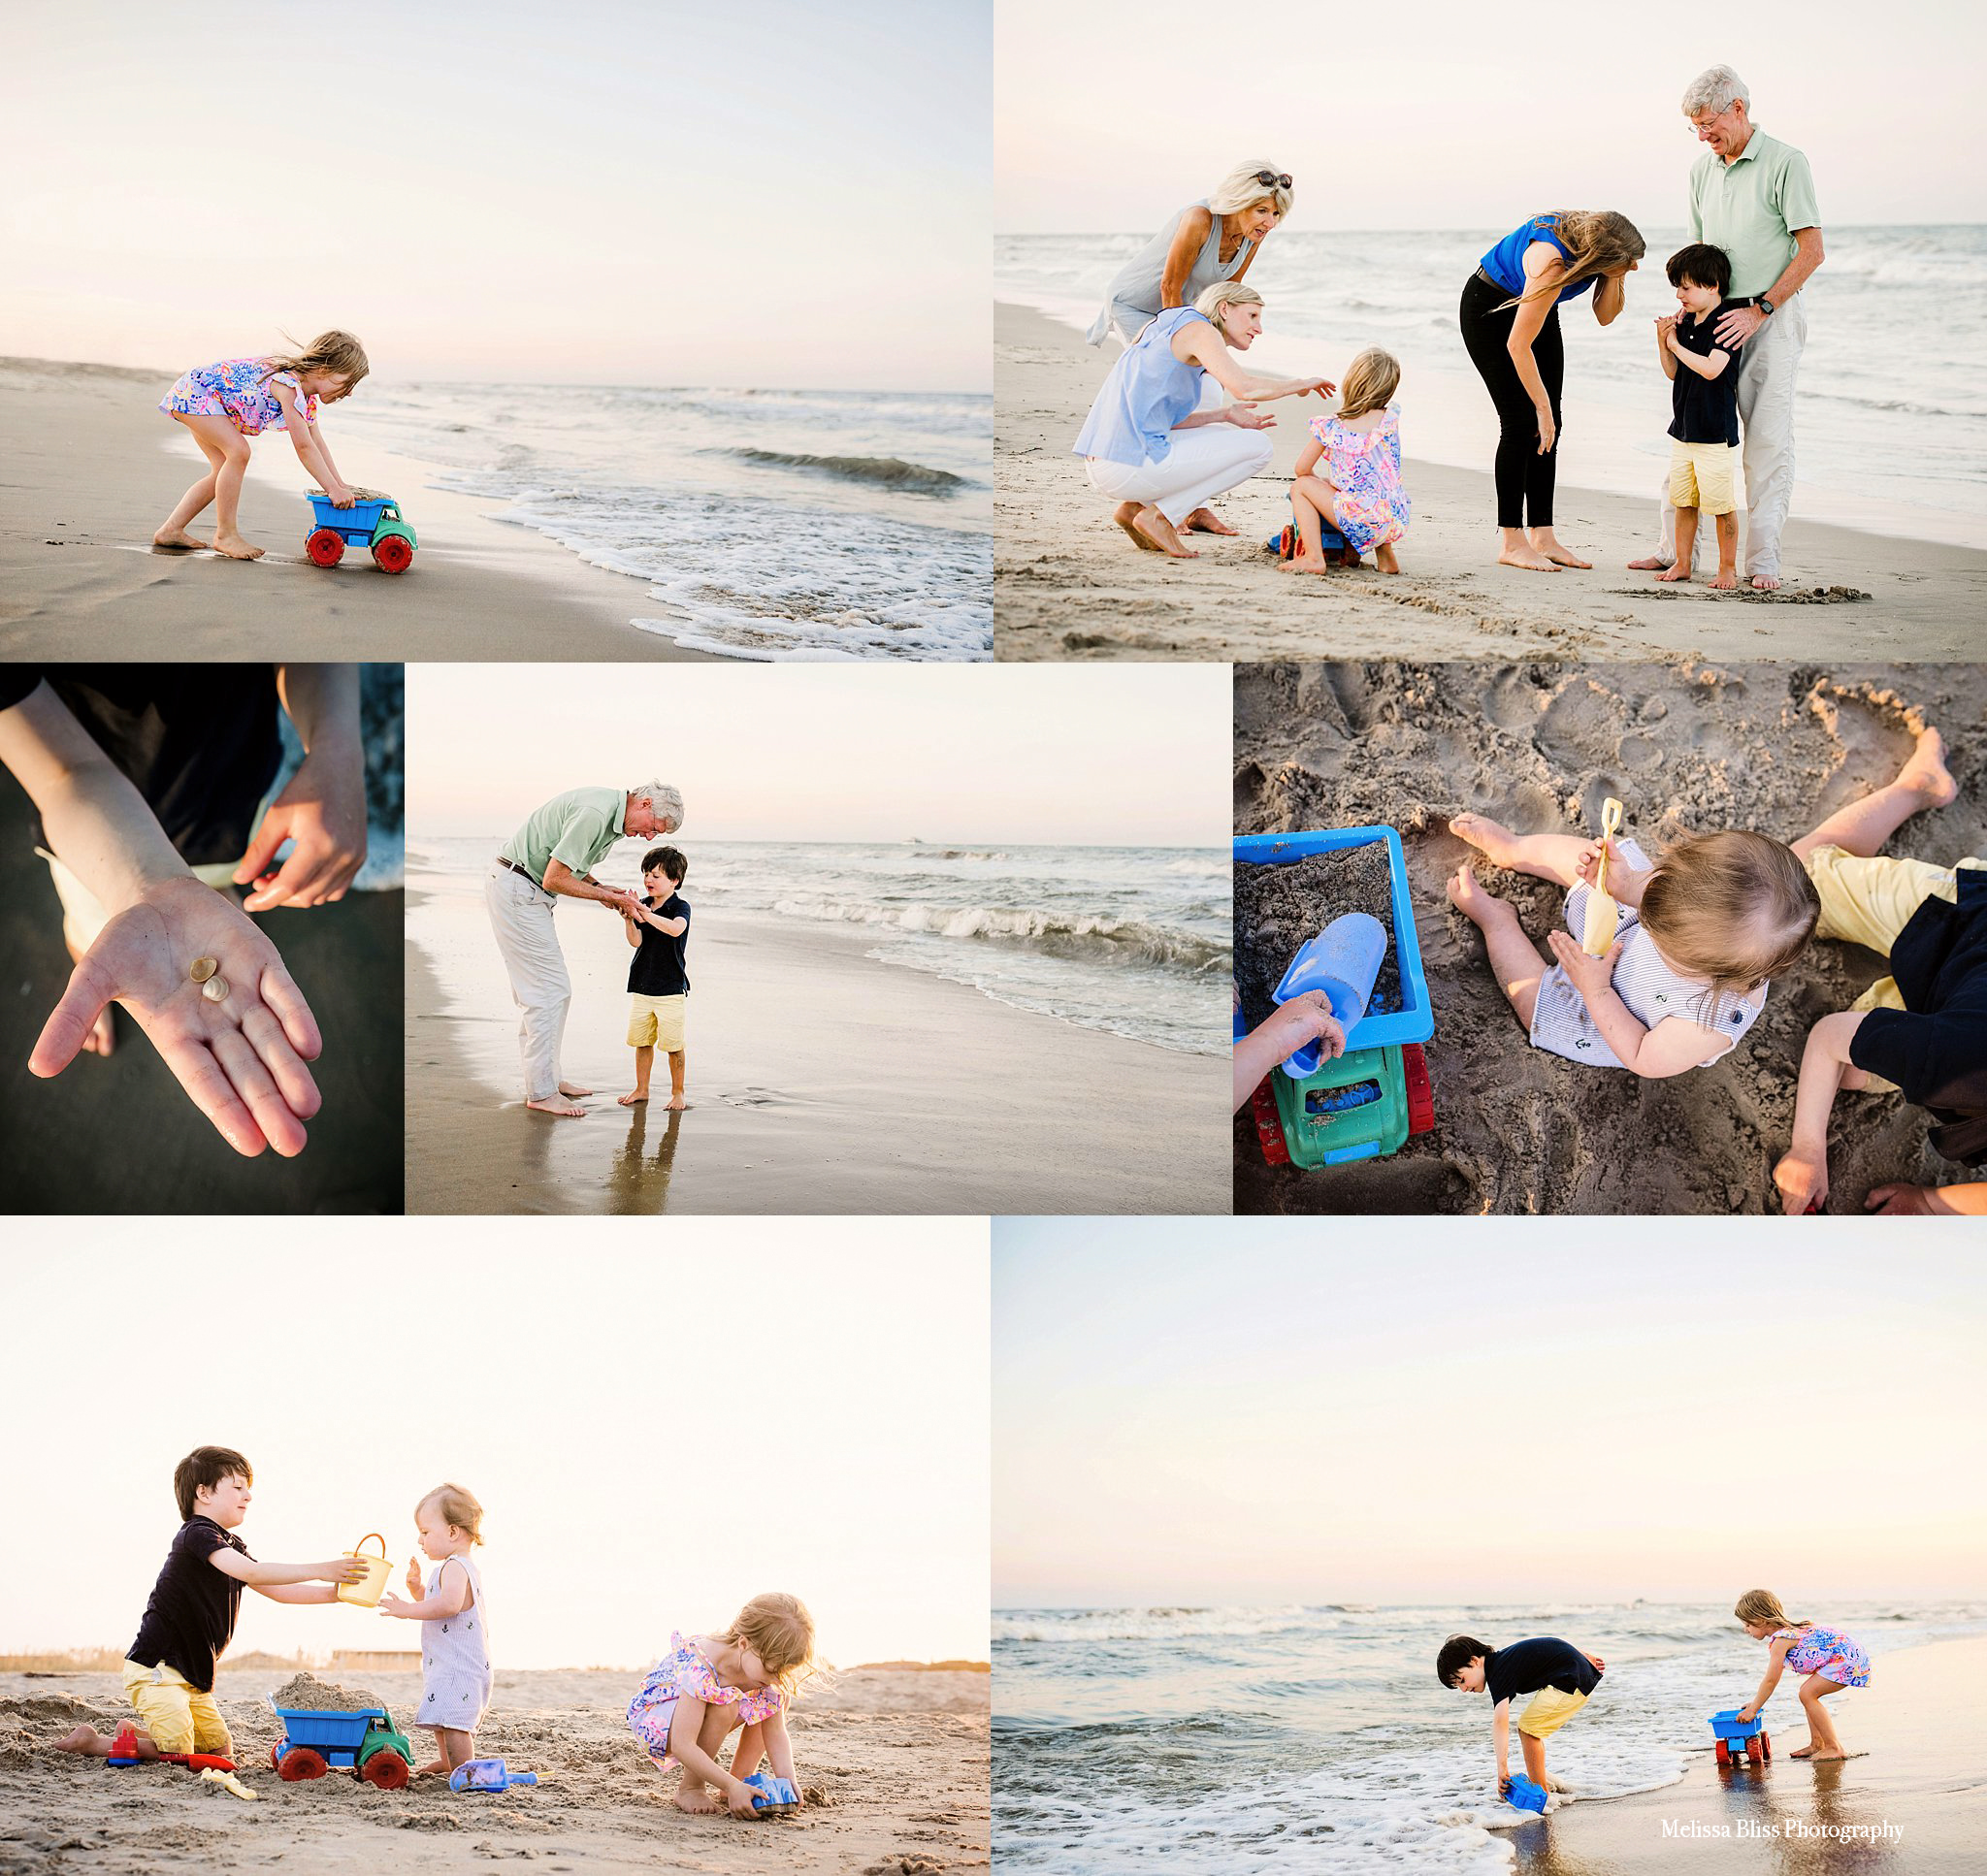 virginia-beach-norfolk-documentary-family-photographer-melissa-bliss-photography-hampton-roads-family-photo-sessions.jpg